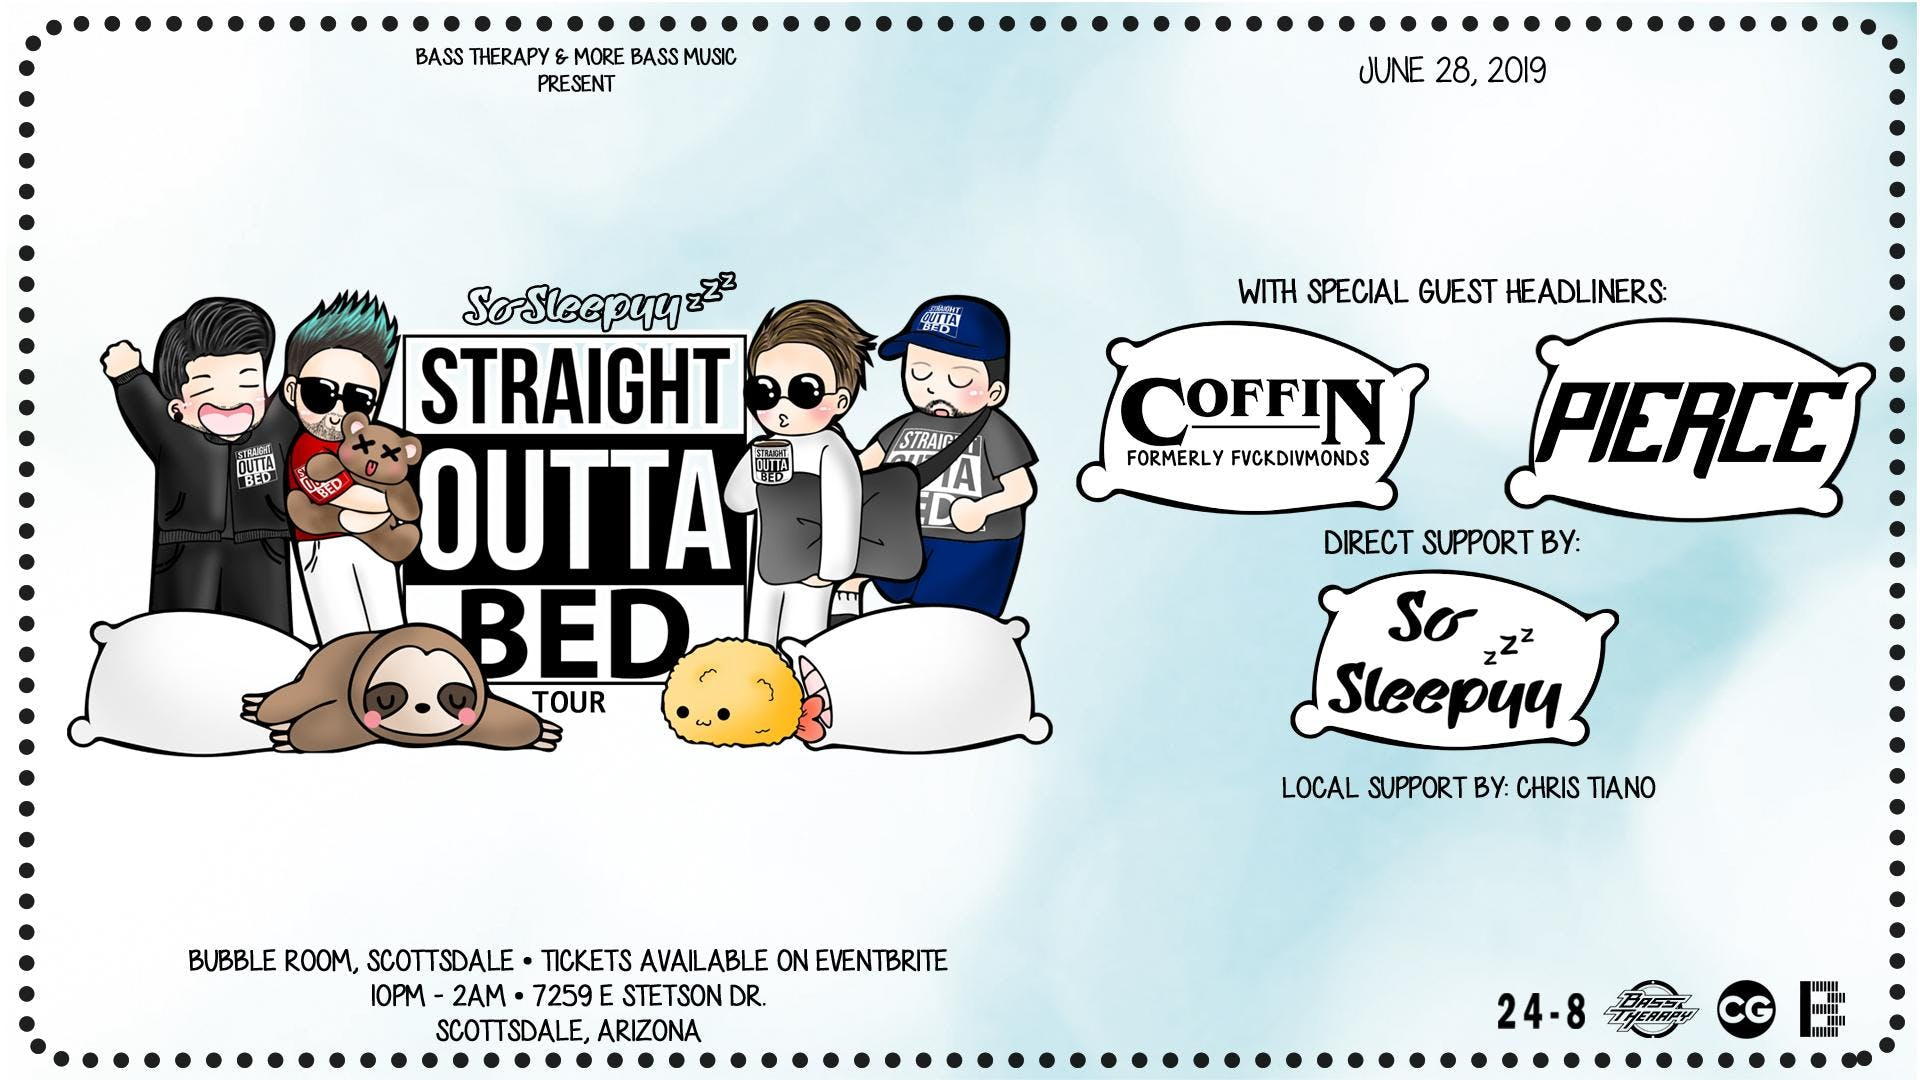 Straight Outta Bed Tour: With COFFIN, PIERCE & SoSleepyy